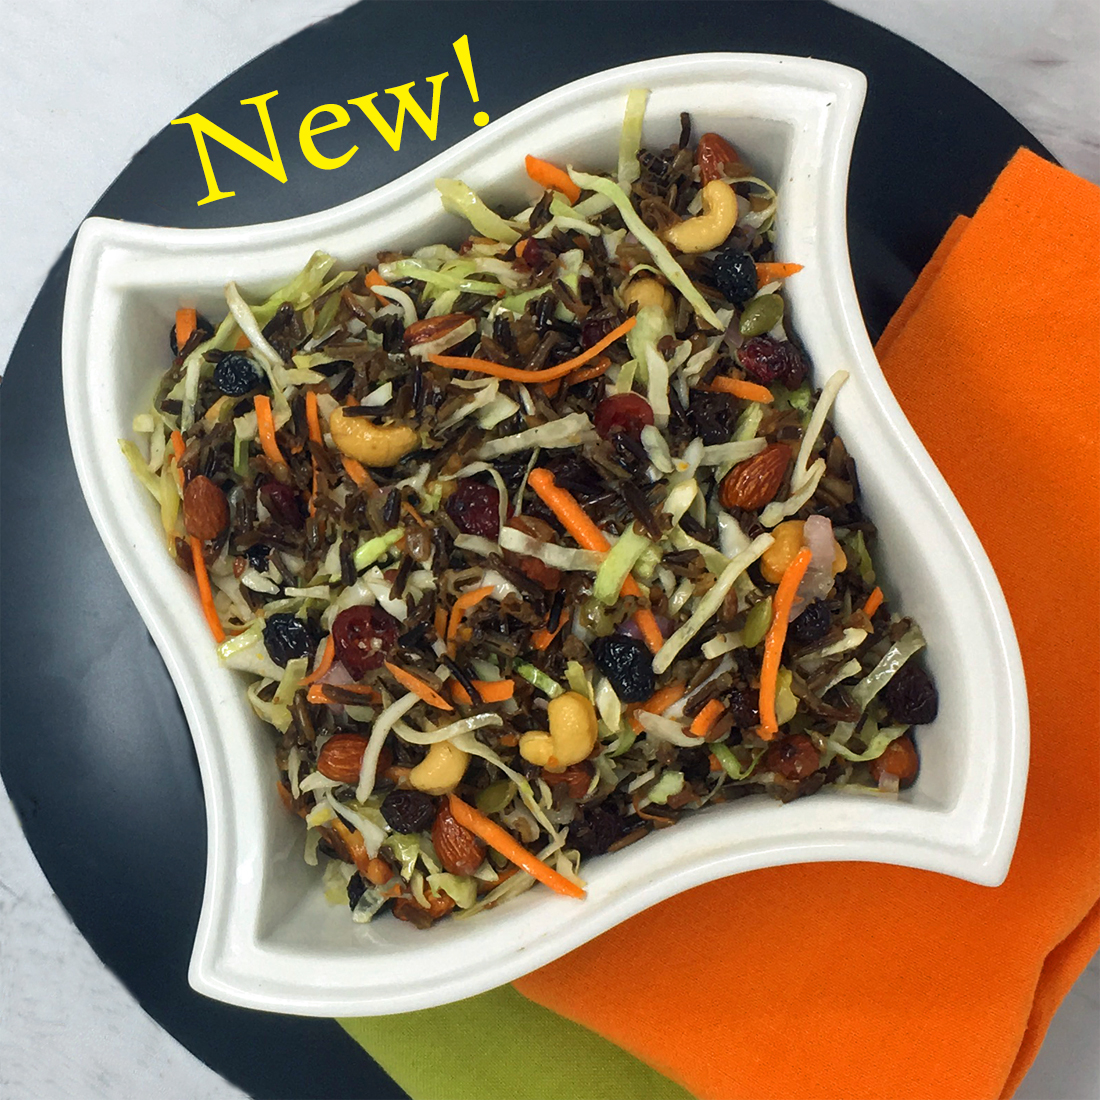 Chieftain's Wild Rice Salad Kit